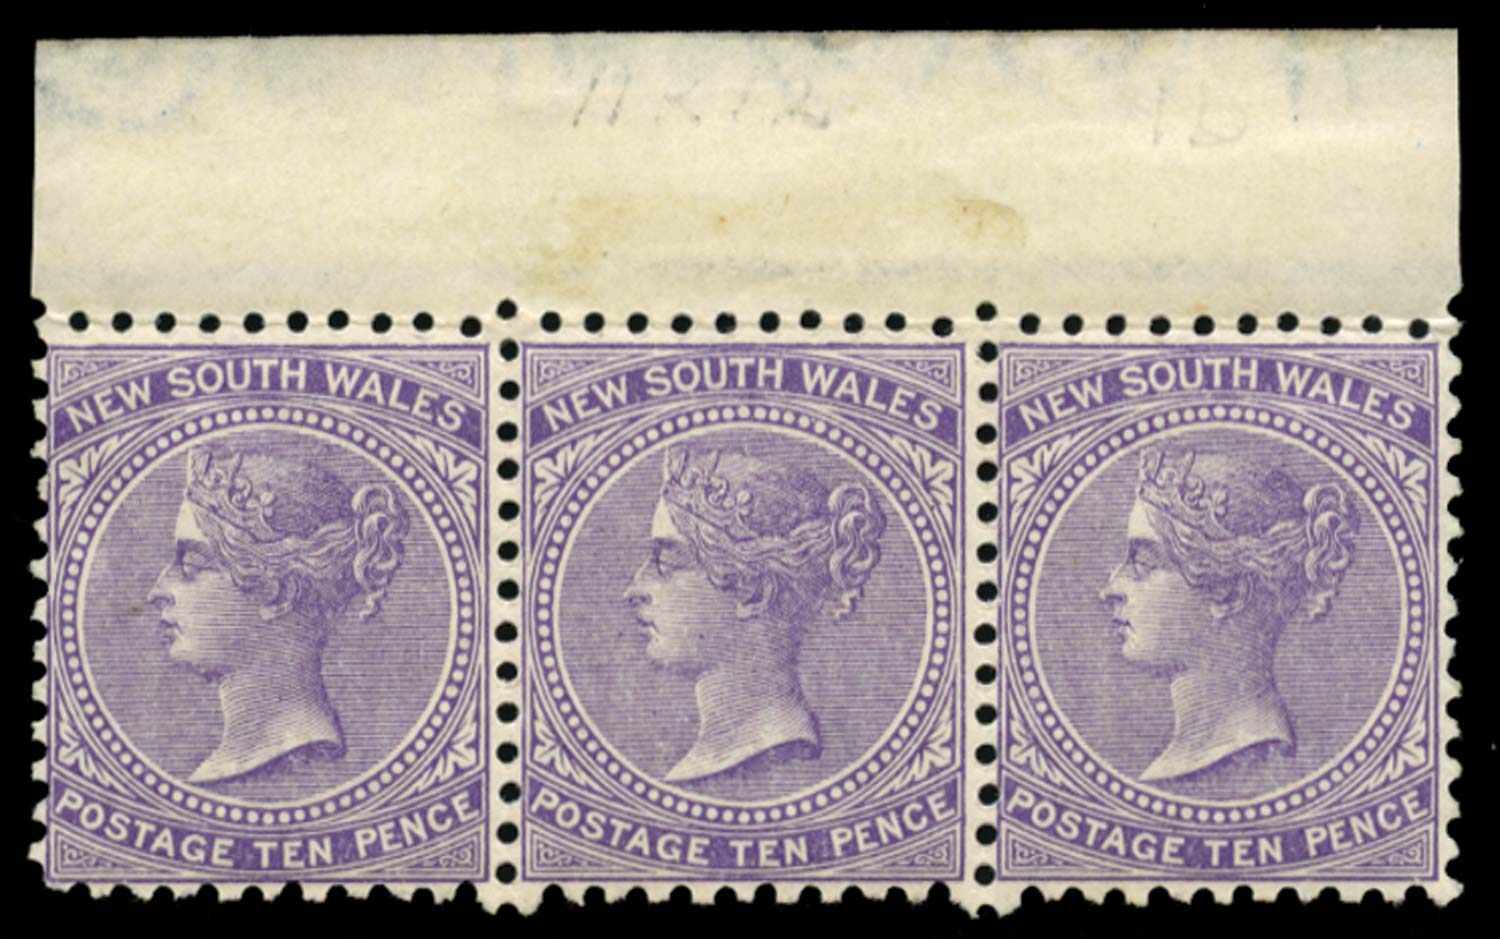 NEW SOUTH WALES 1882  SG236e Mint